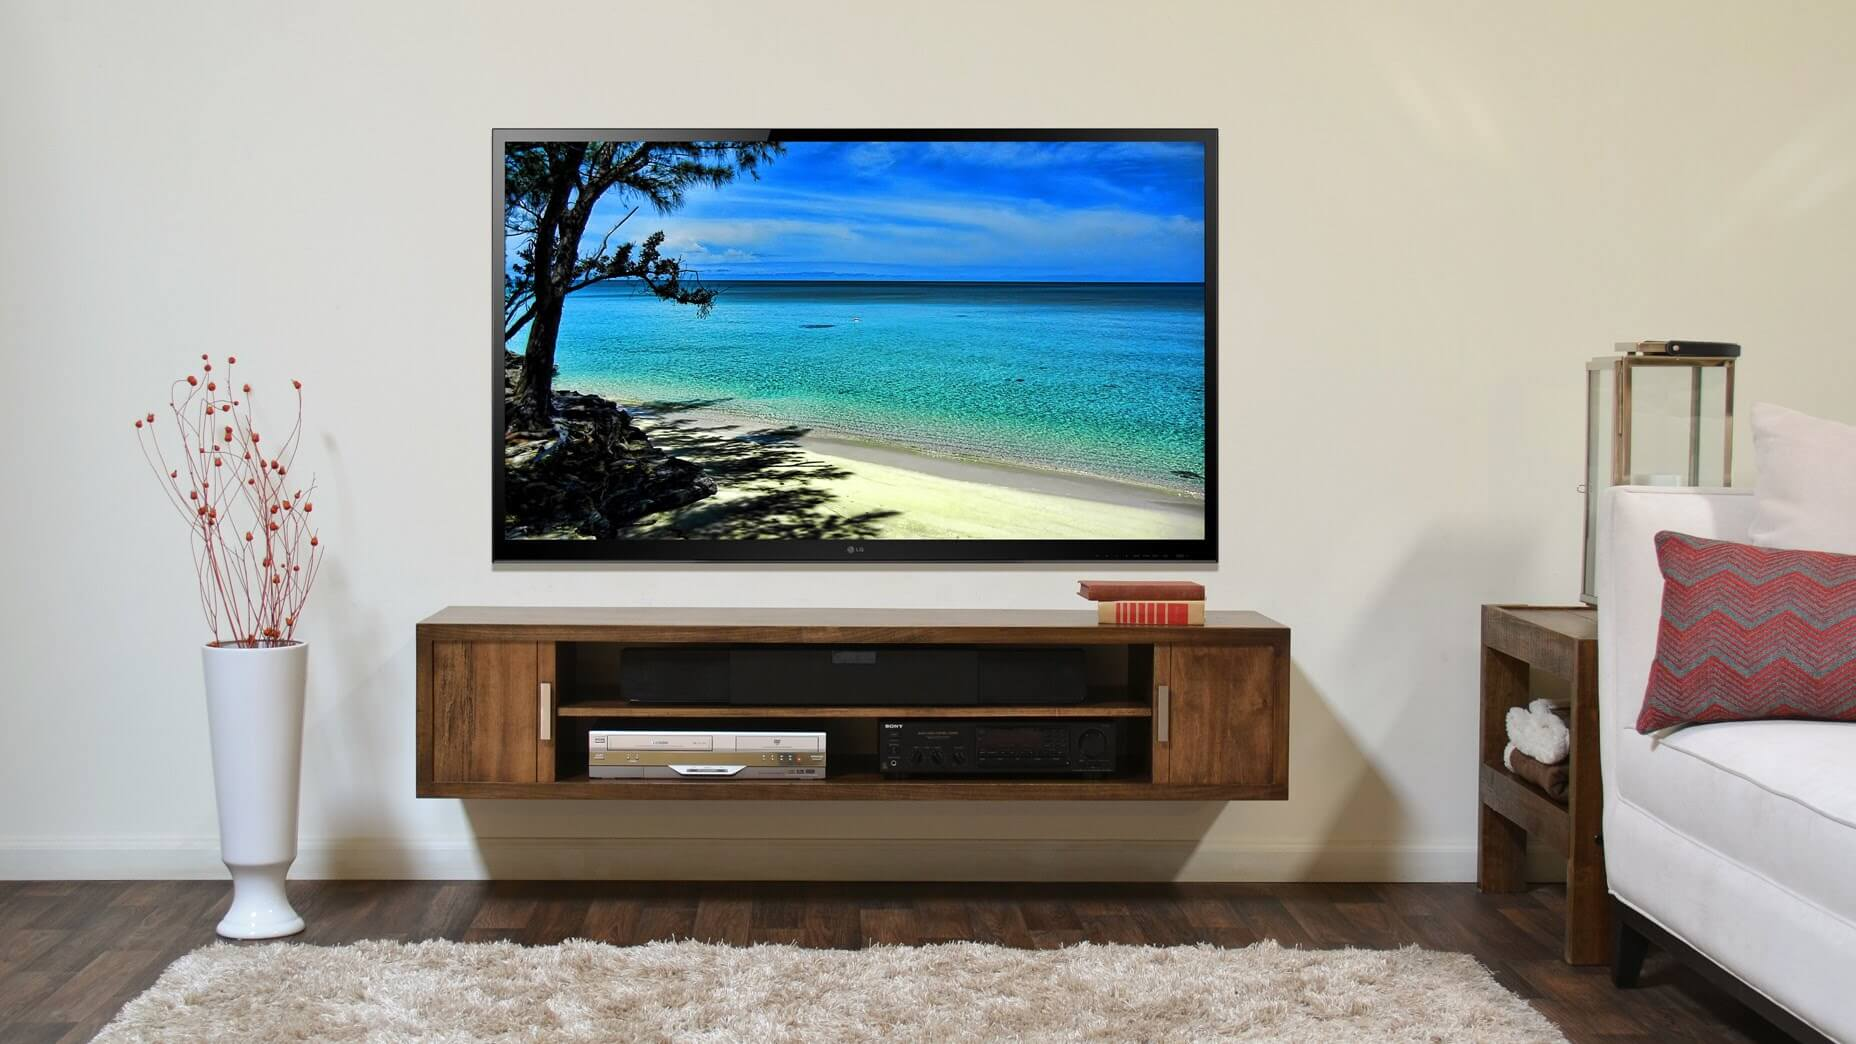 35 Stylish Led Tv Wall Panel Designs For Your Living Room